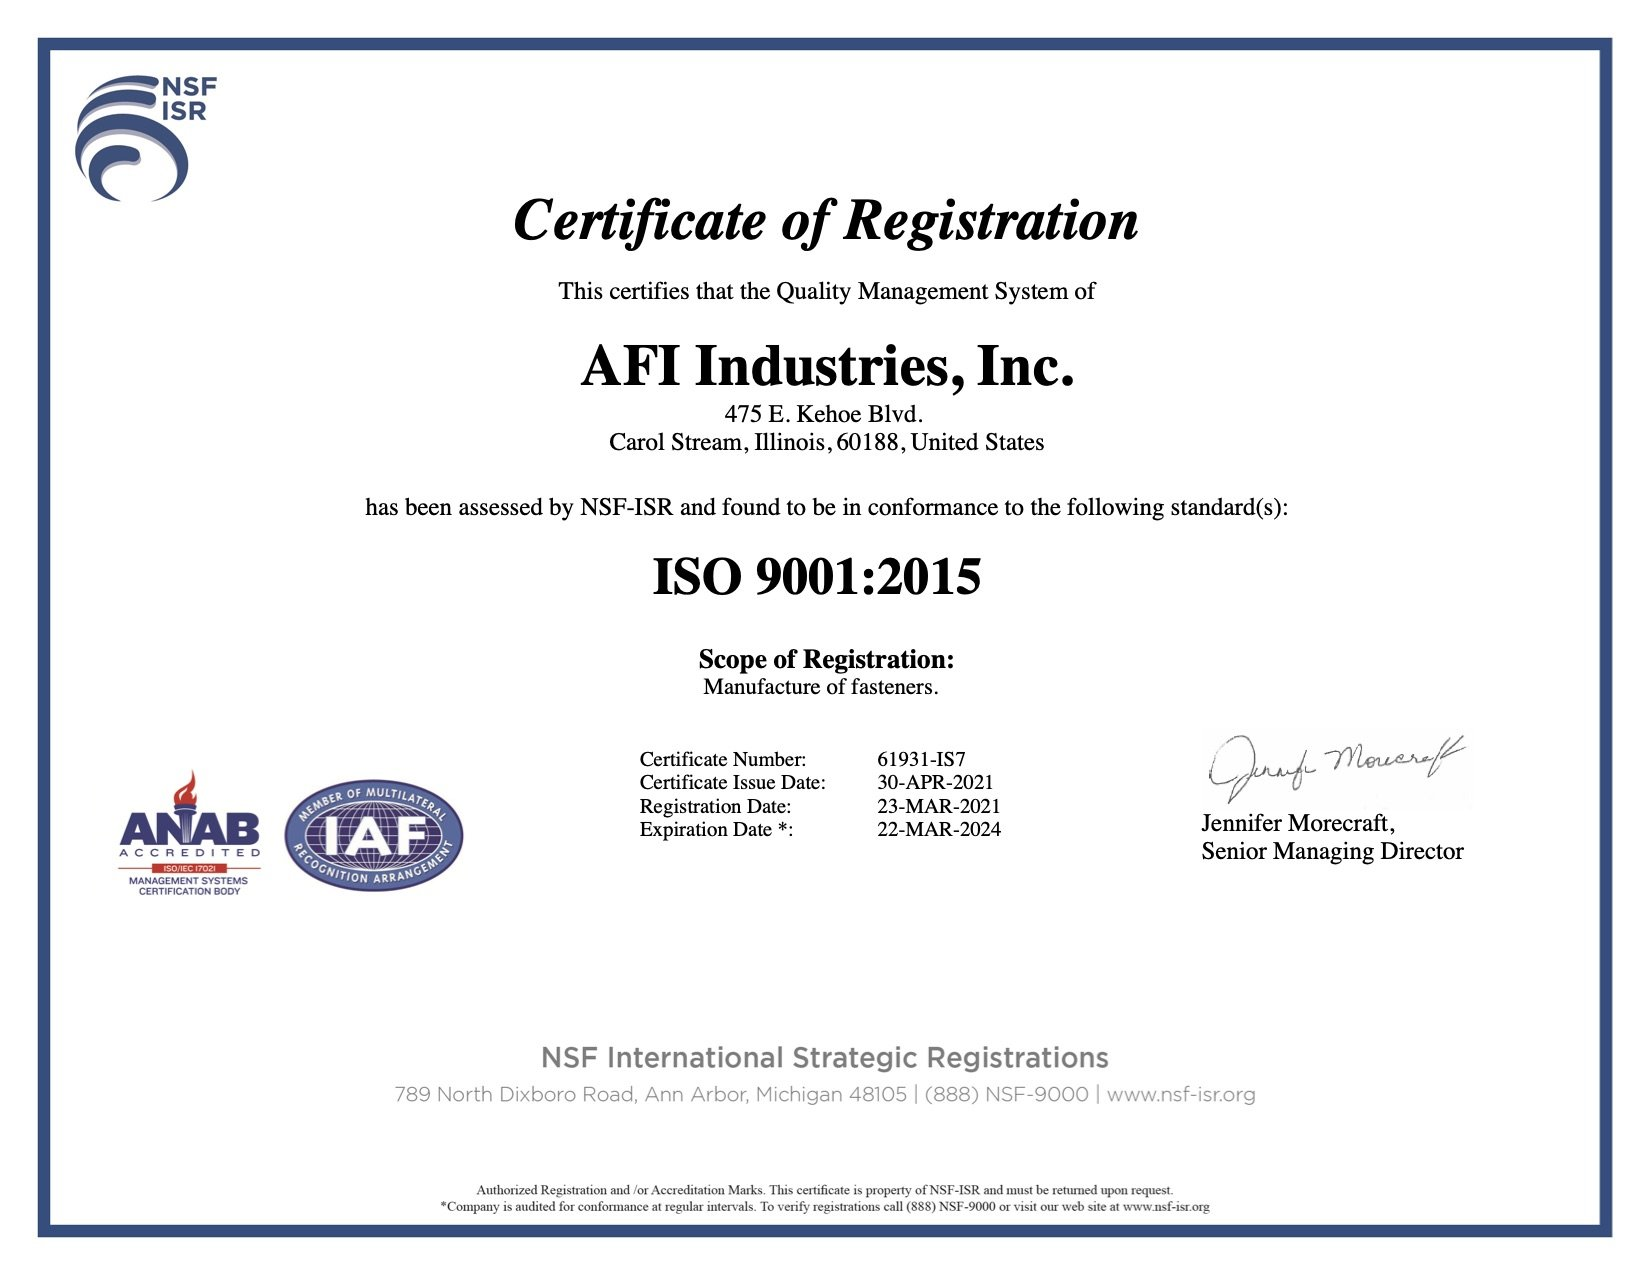 ISO 9001 2015 certificate for AFI Industries